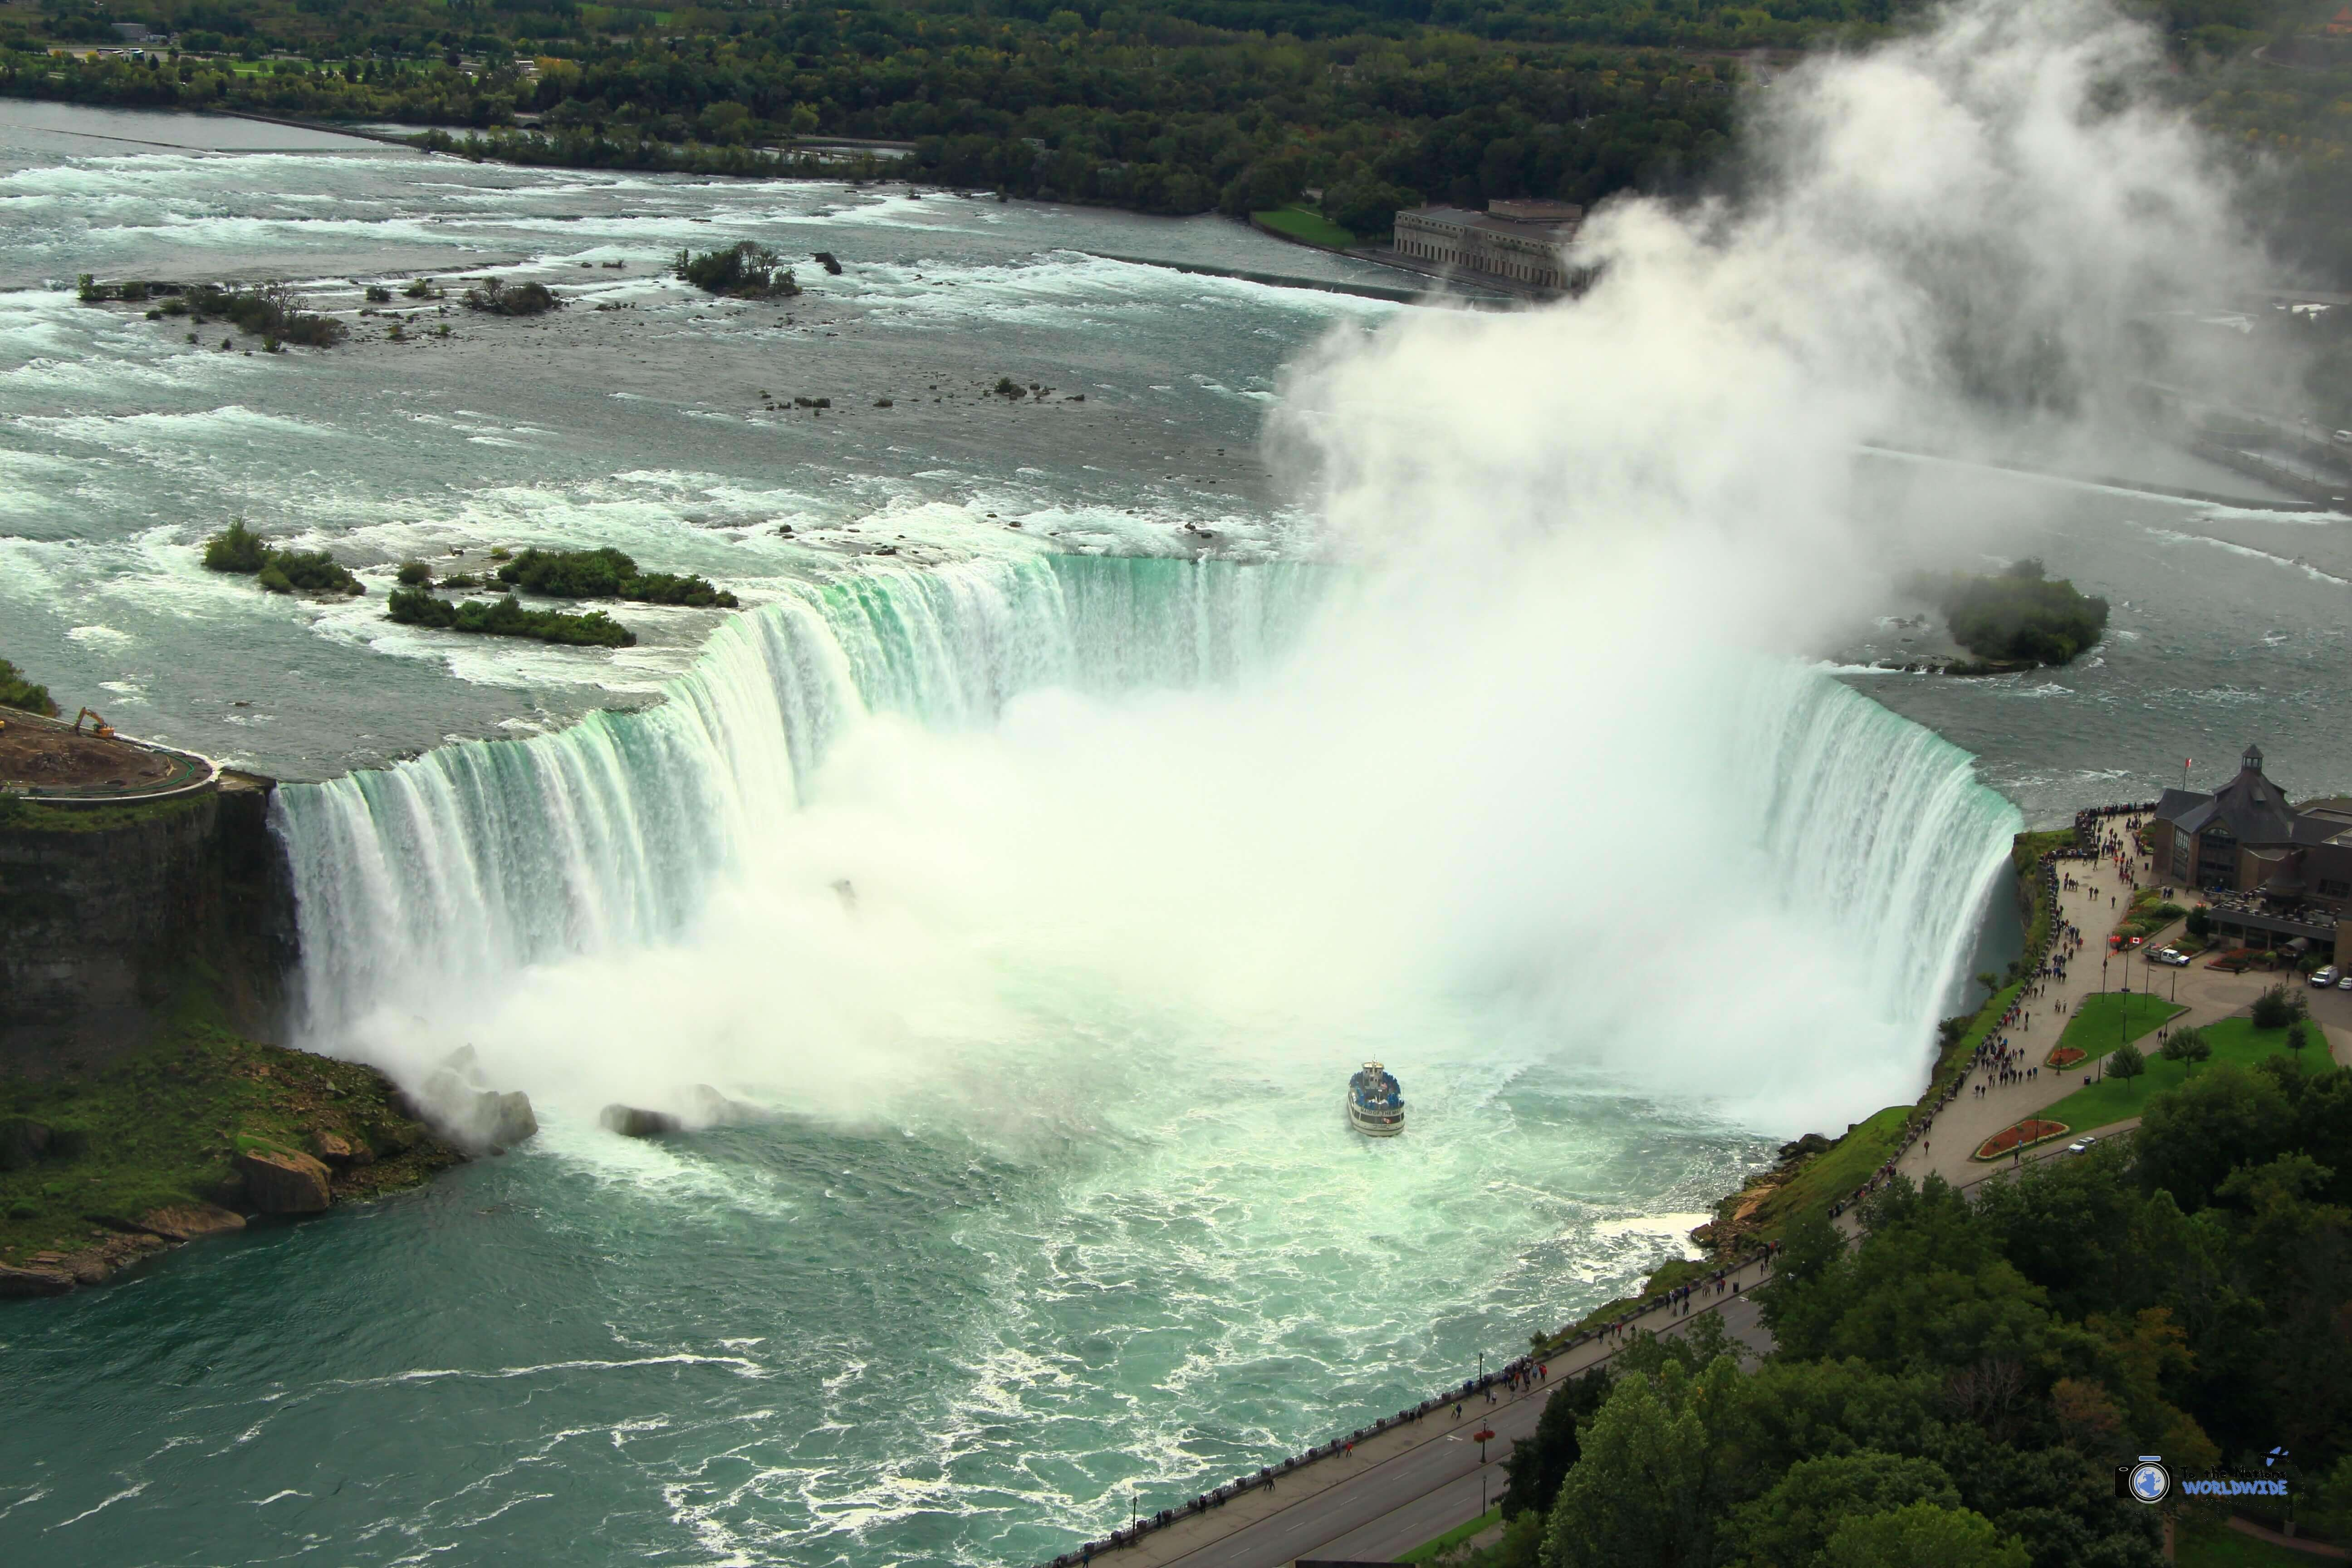 A view of the falls from the Skylon Tower in Niagara Falls, Ontario, Canada